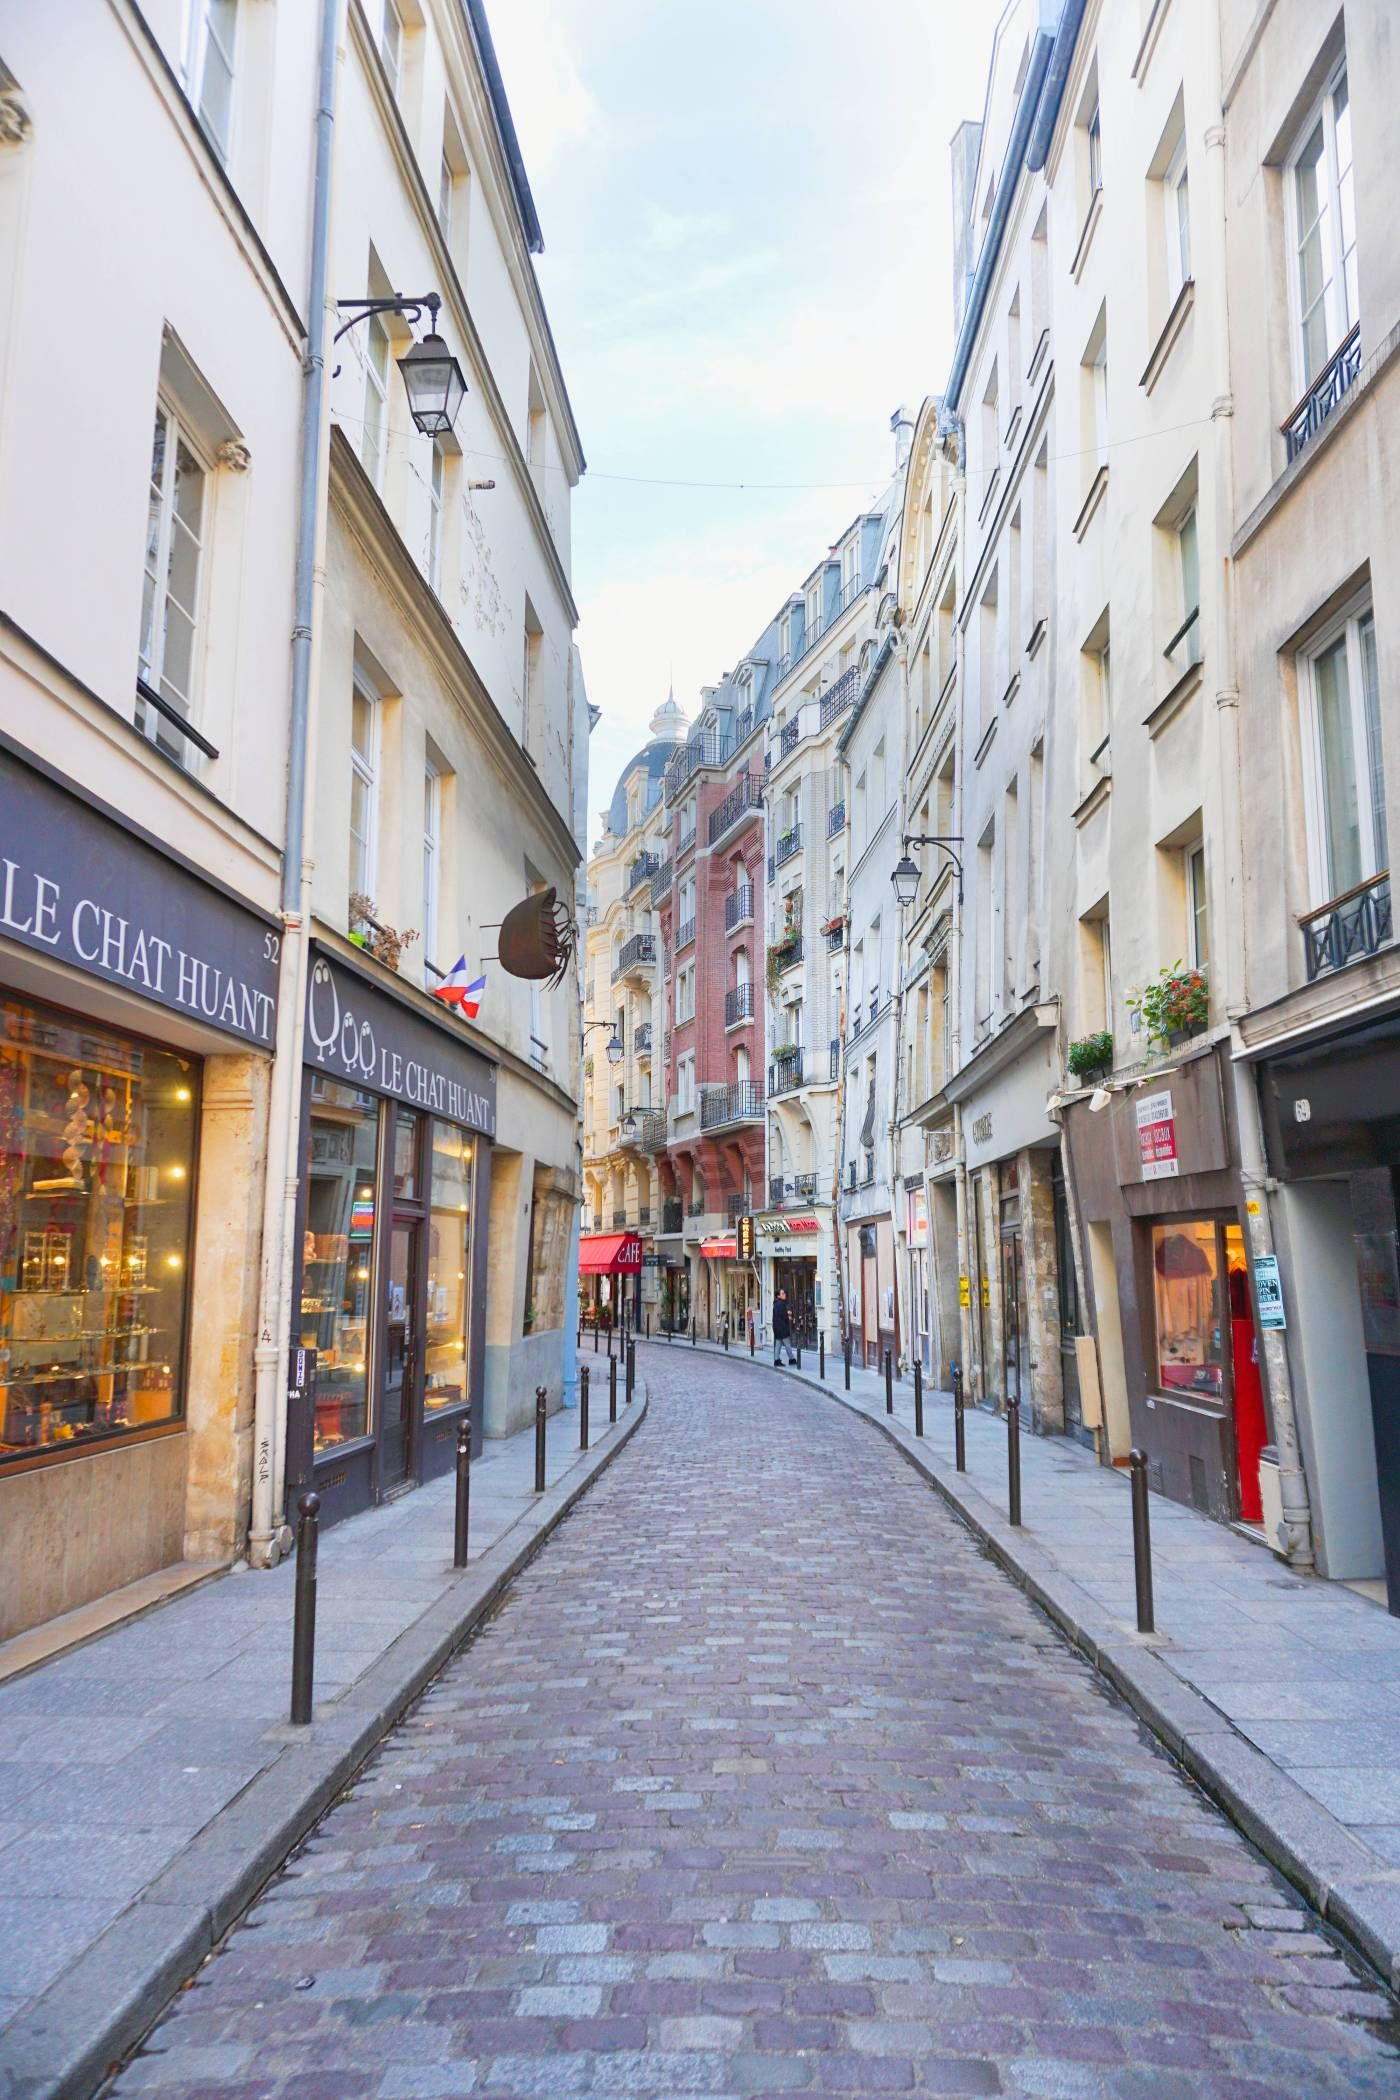 10 Of The Most Charming Streets In Paris + Map To Find Them - Follow Me Away